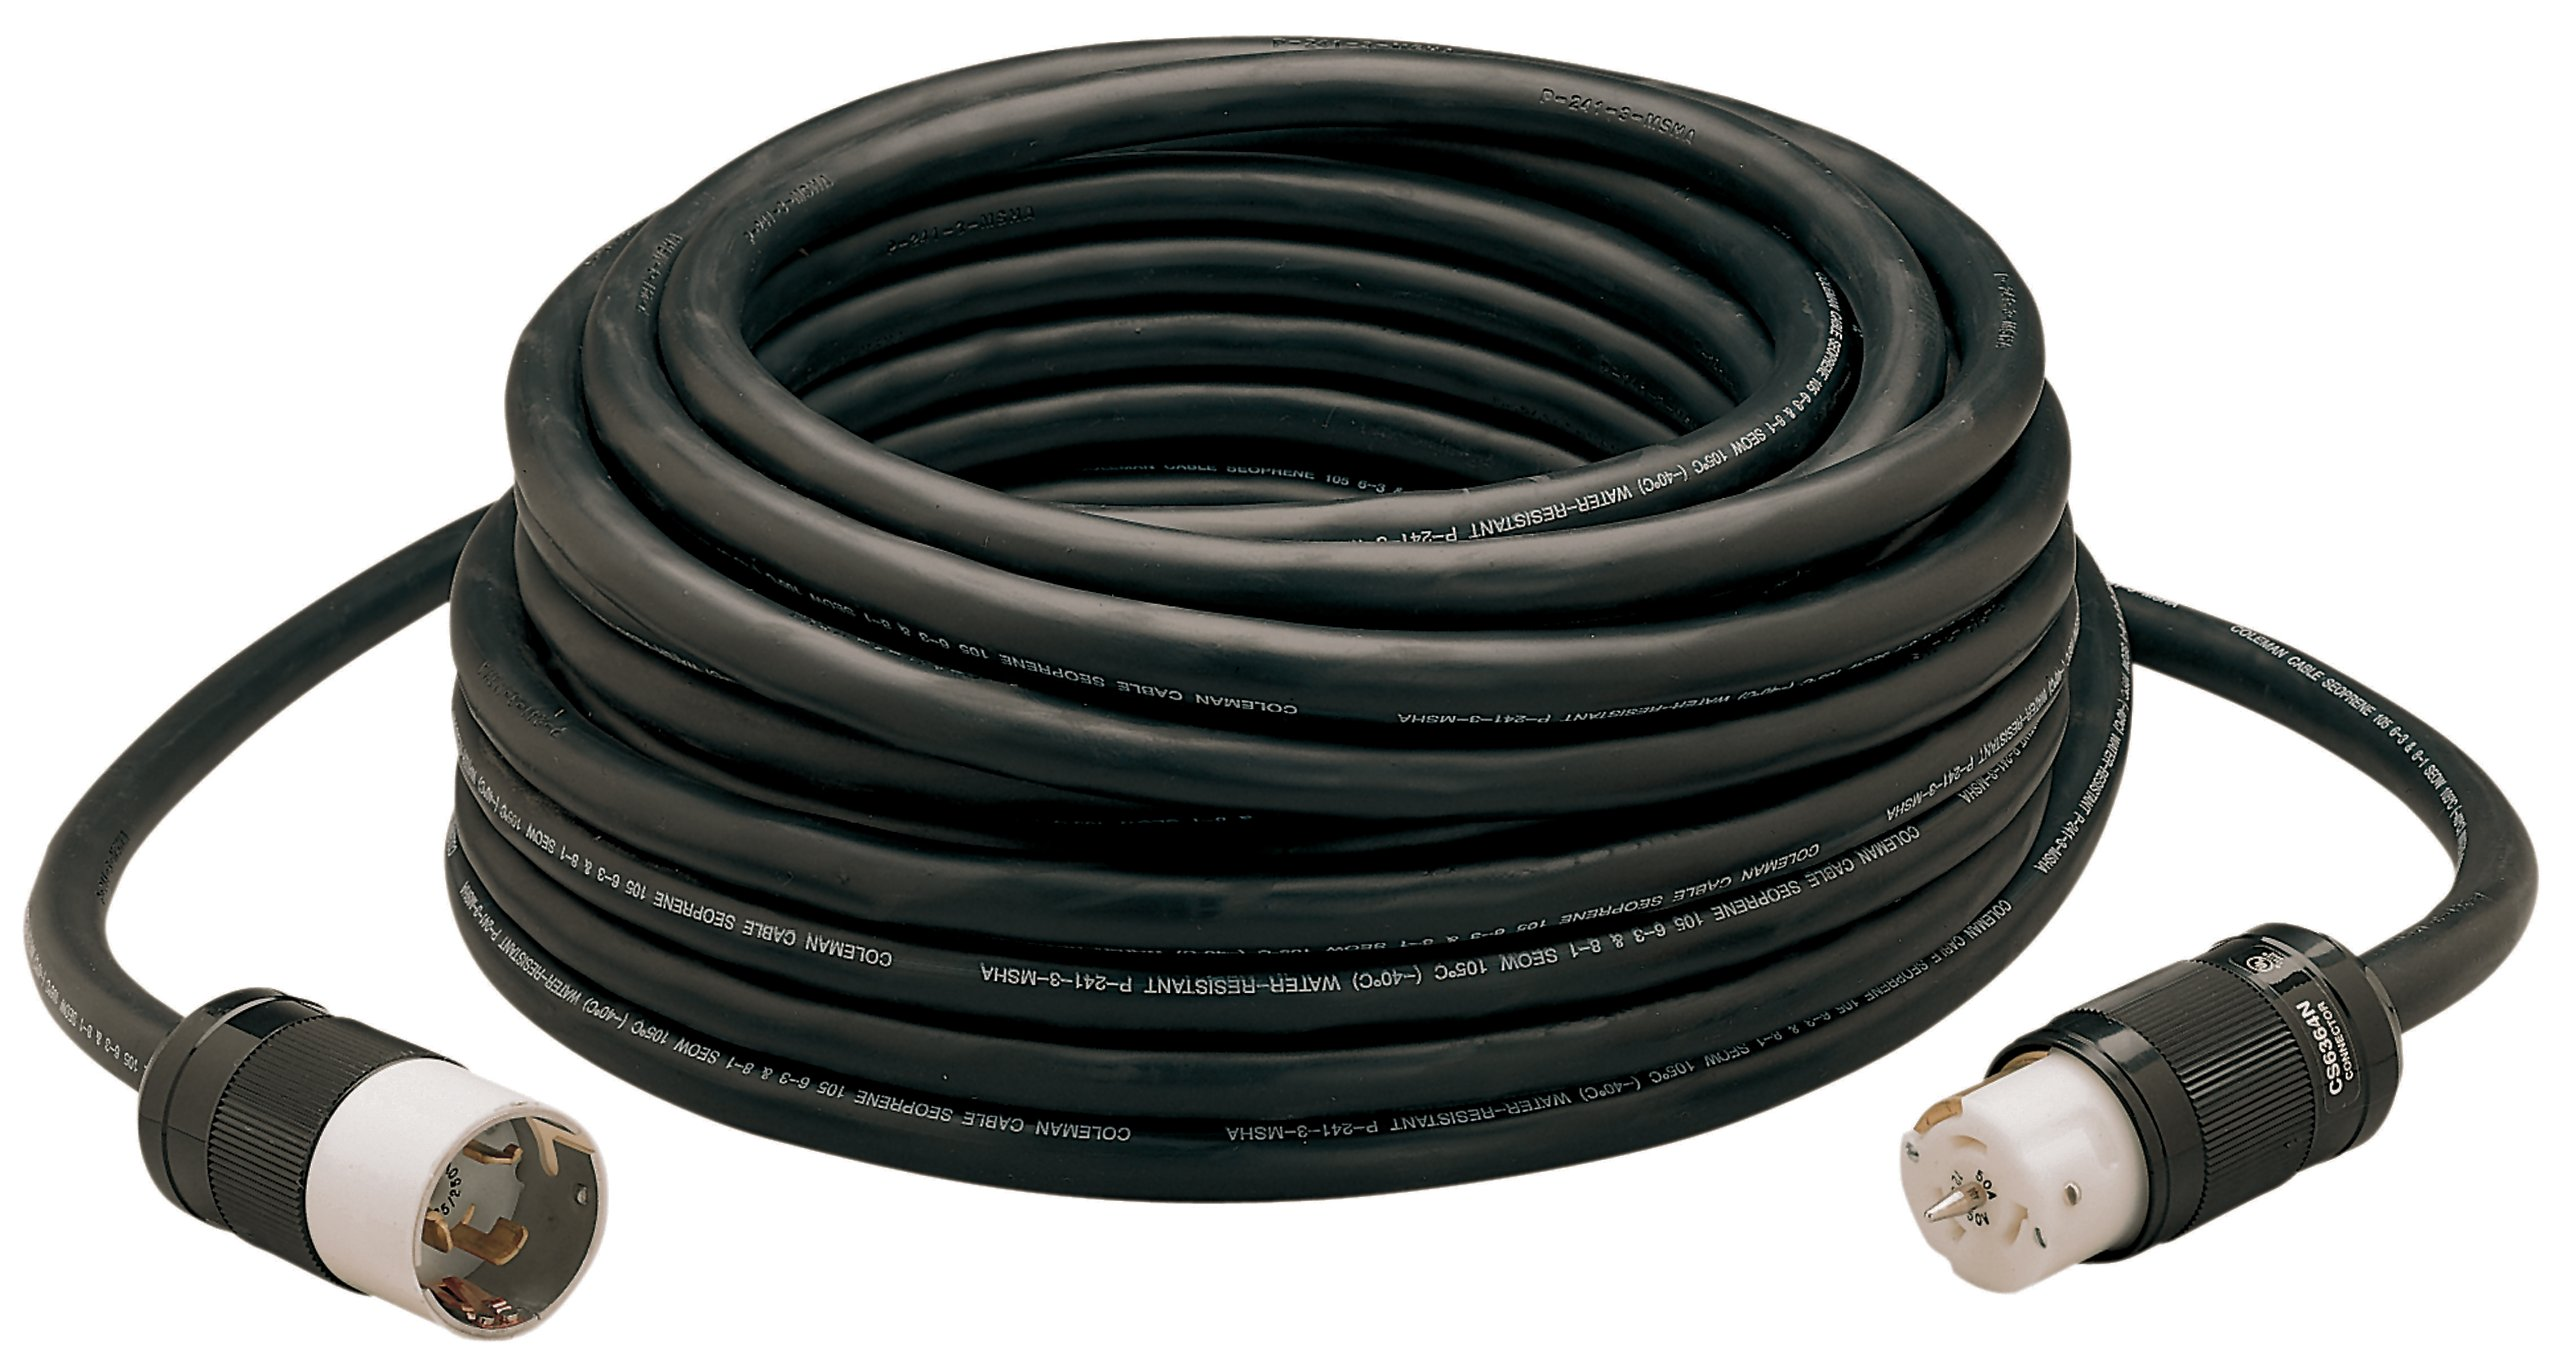 Coleman Cable 01919 50-Amp Twist-Lock Generator Power Extension Cord, 6/3 & 8/1 SEOW Black, 100-Foot